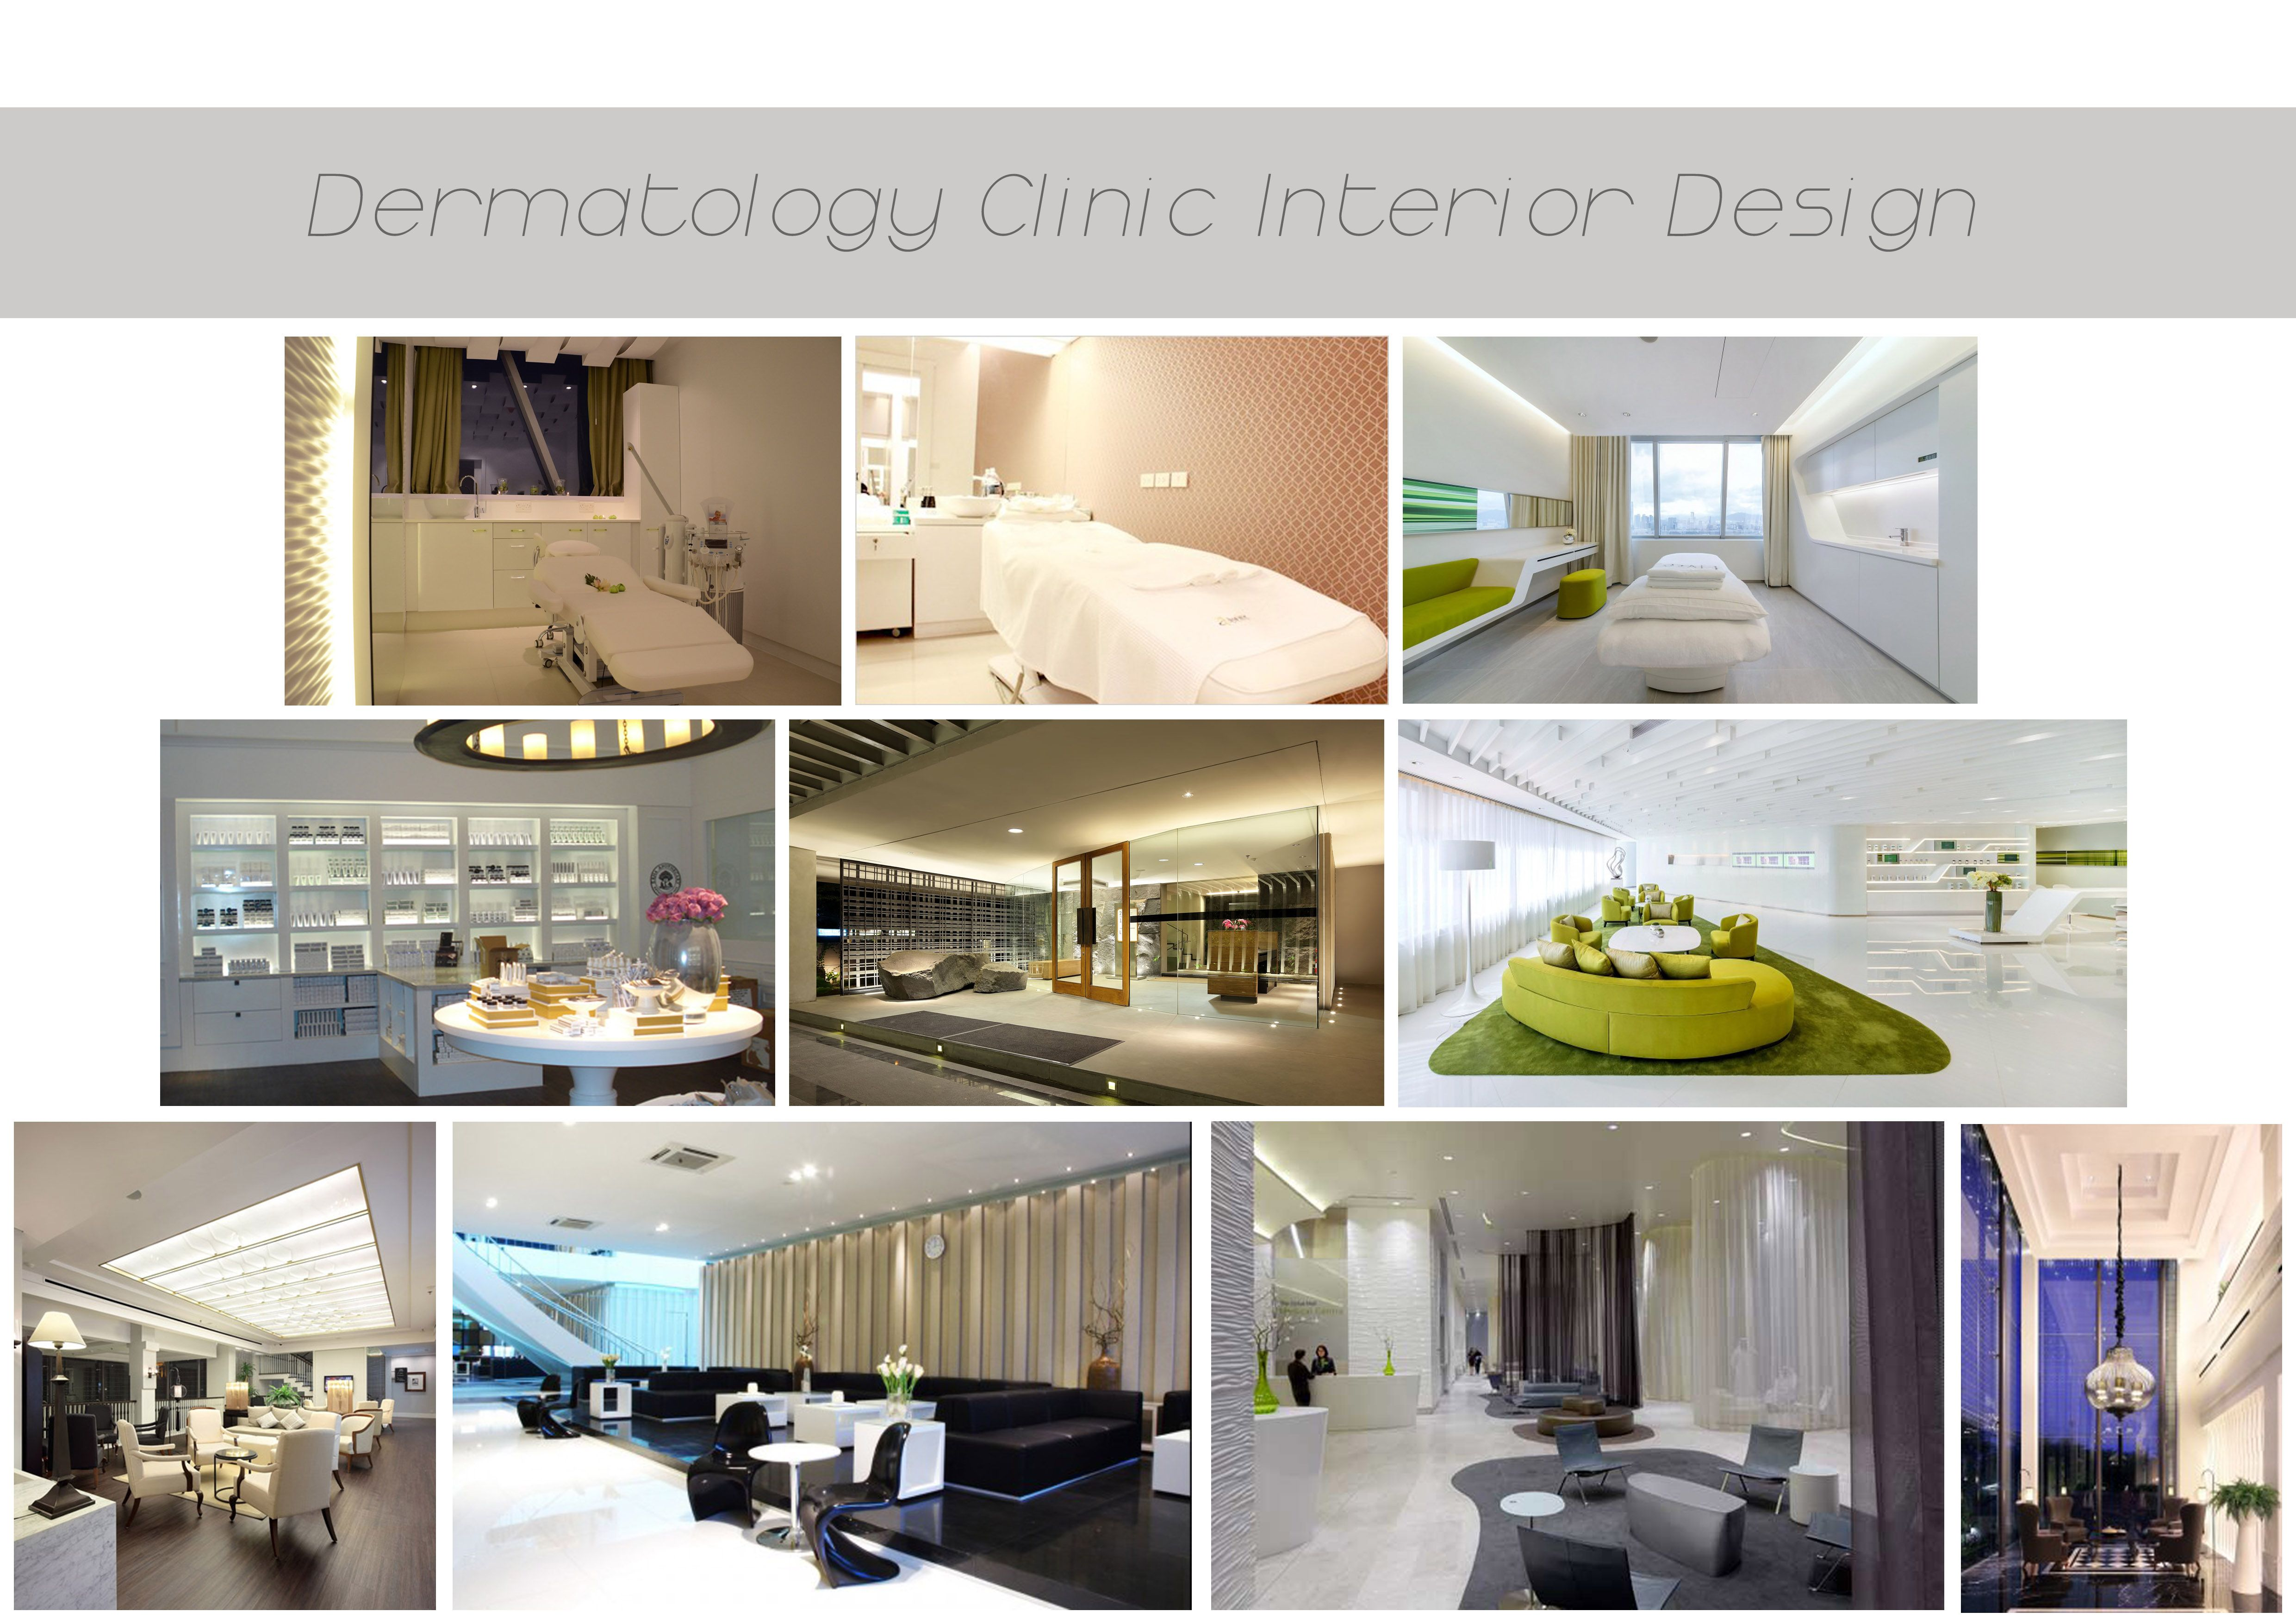 Dermatology clinic interior design ideas ideas for the house pinterest clinic interior for Dermatology clinic interior design